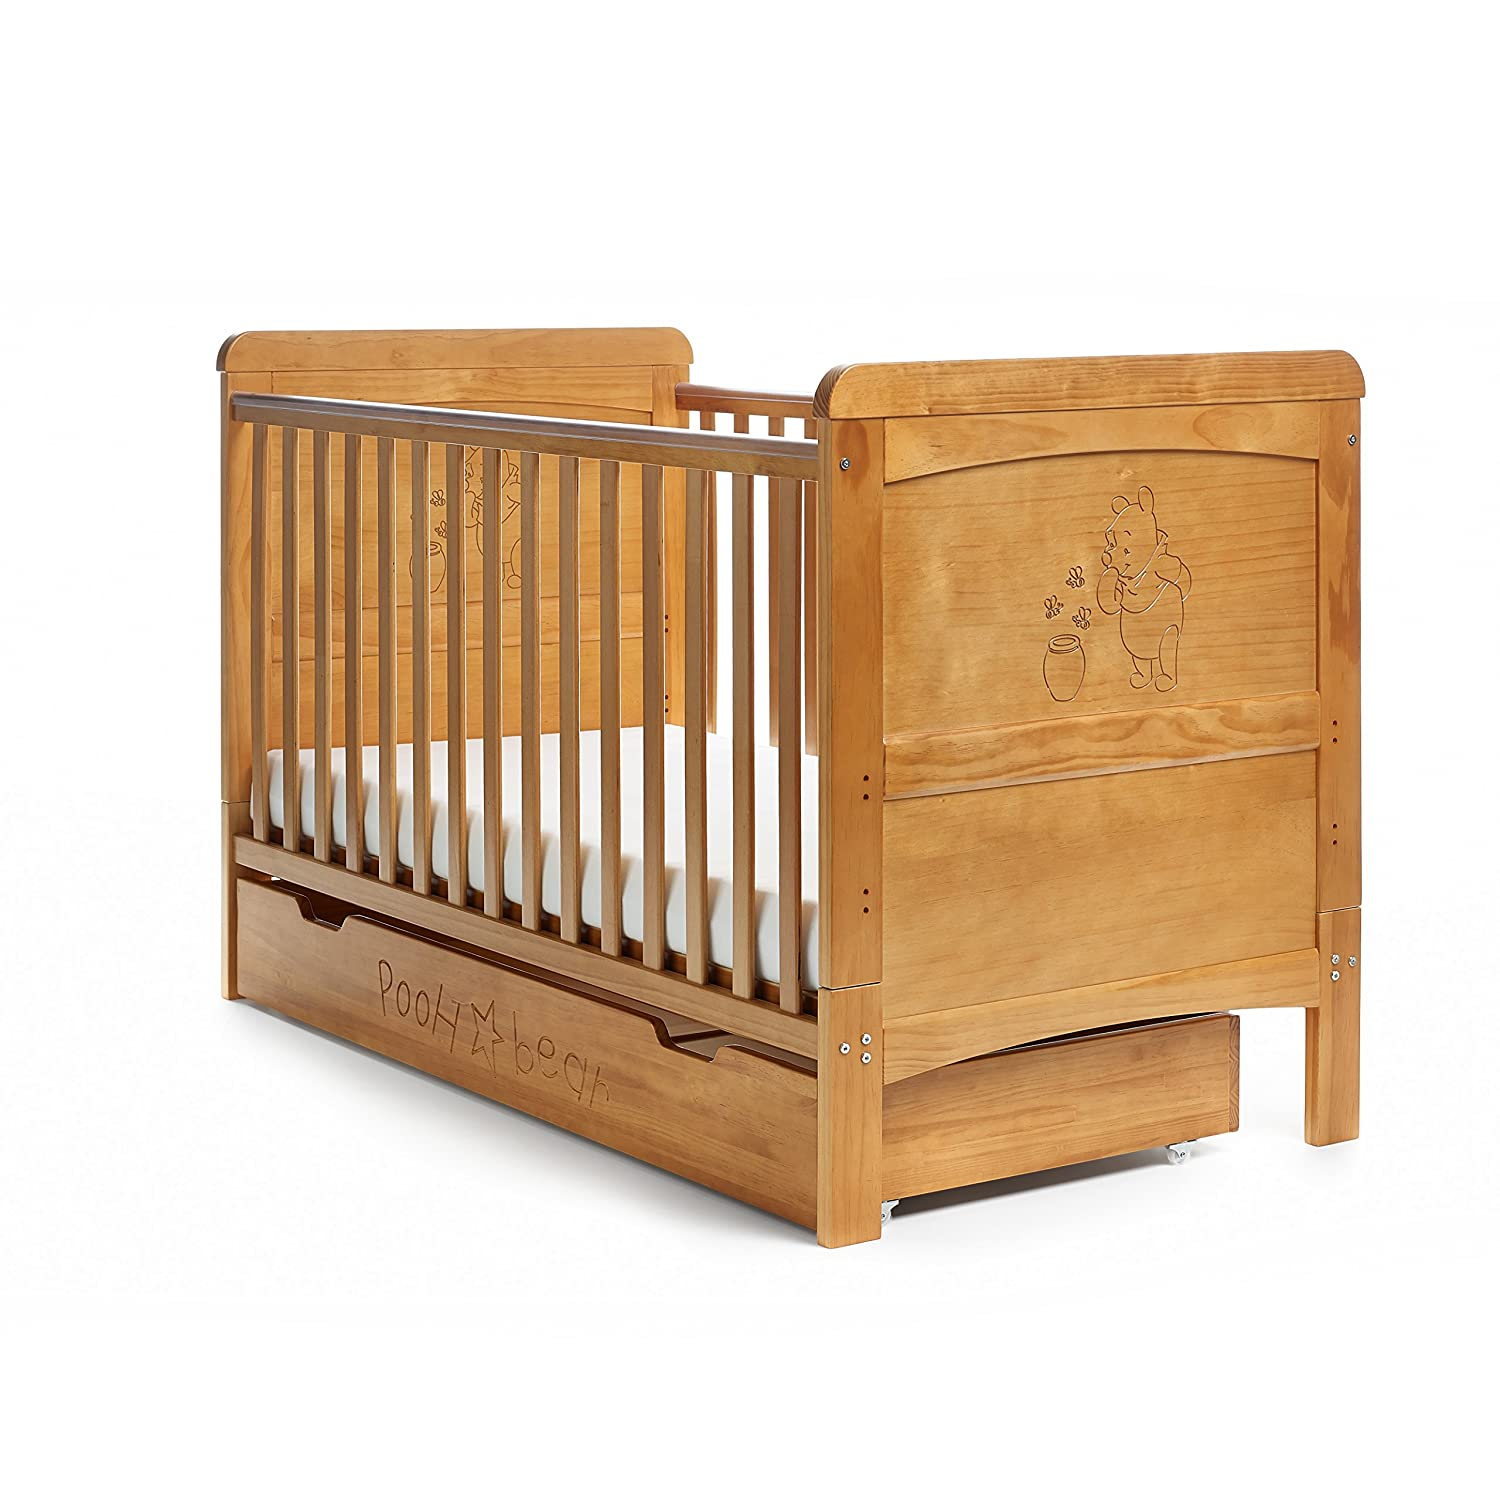 Disney Winnie The Pooh 3 Piece Double Furniture Set (Country Pine):  Amazon.co.uk: Baby